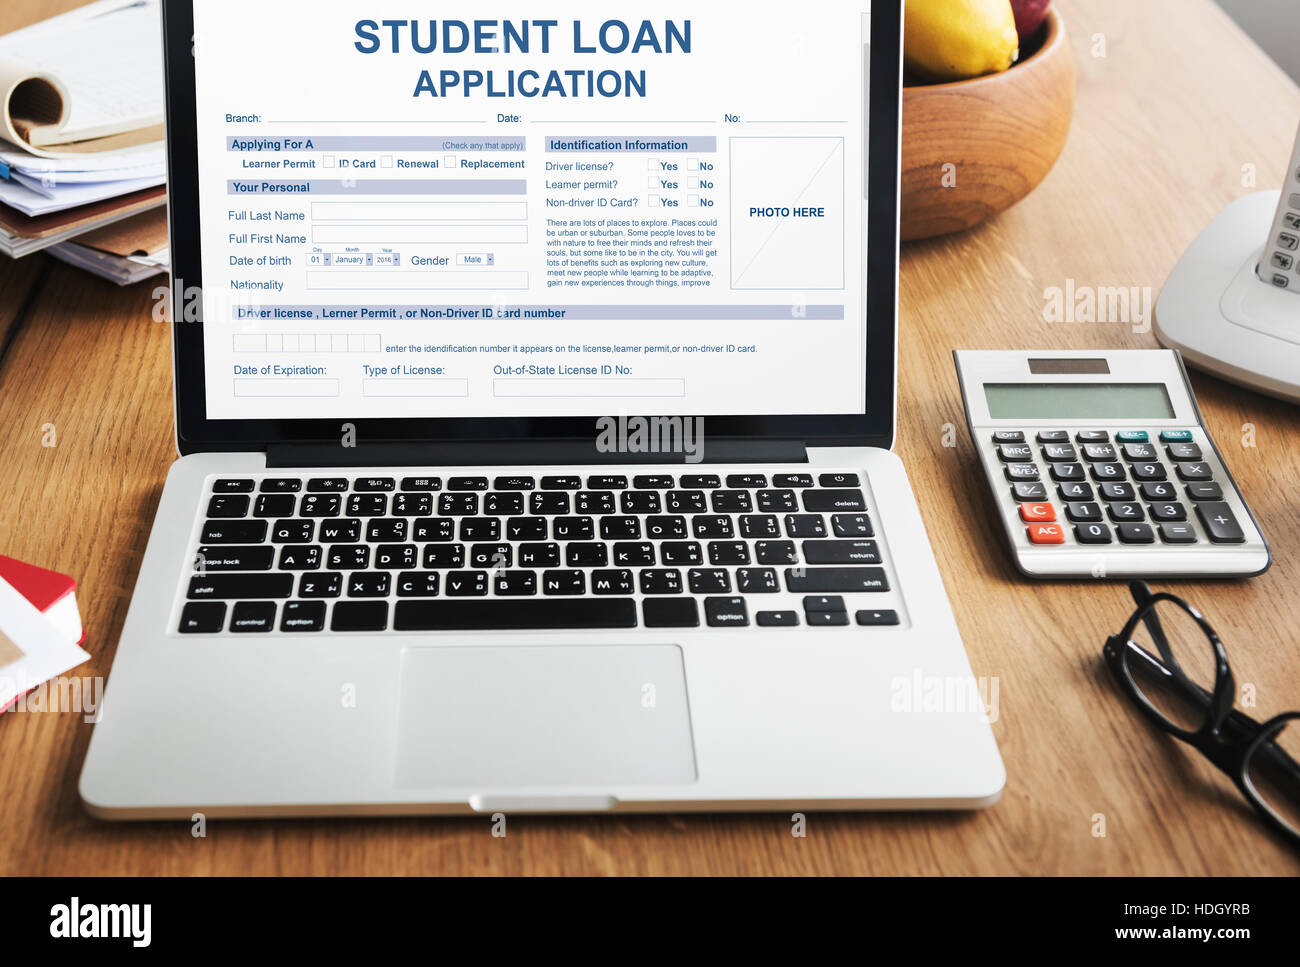 Student Loan Application Form Glasses Stock Photos & Student Loan ...